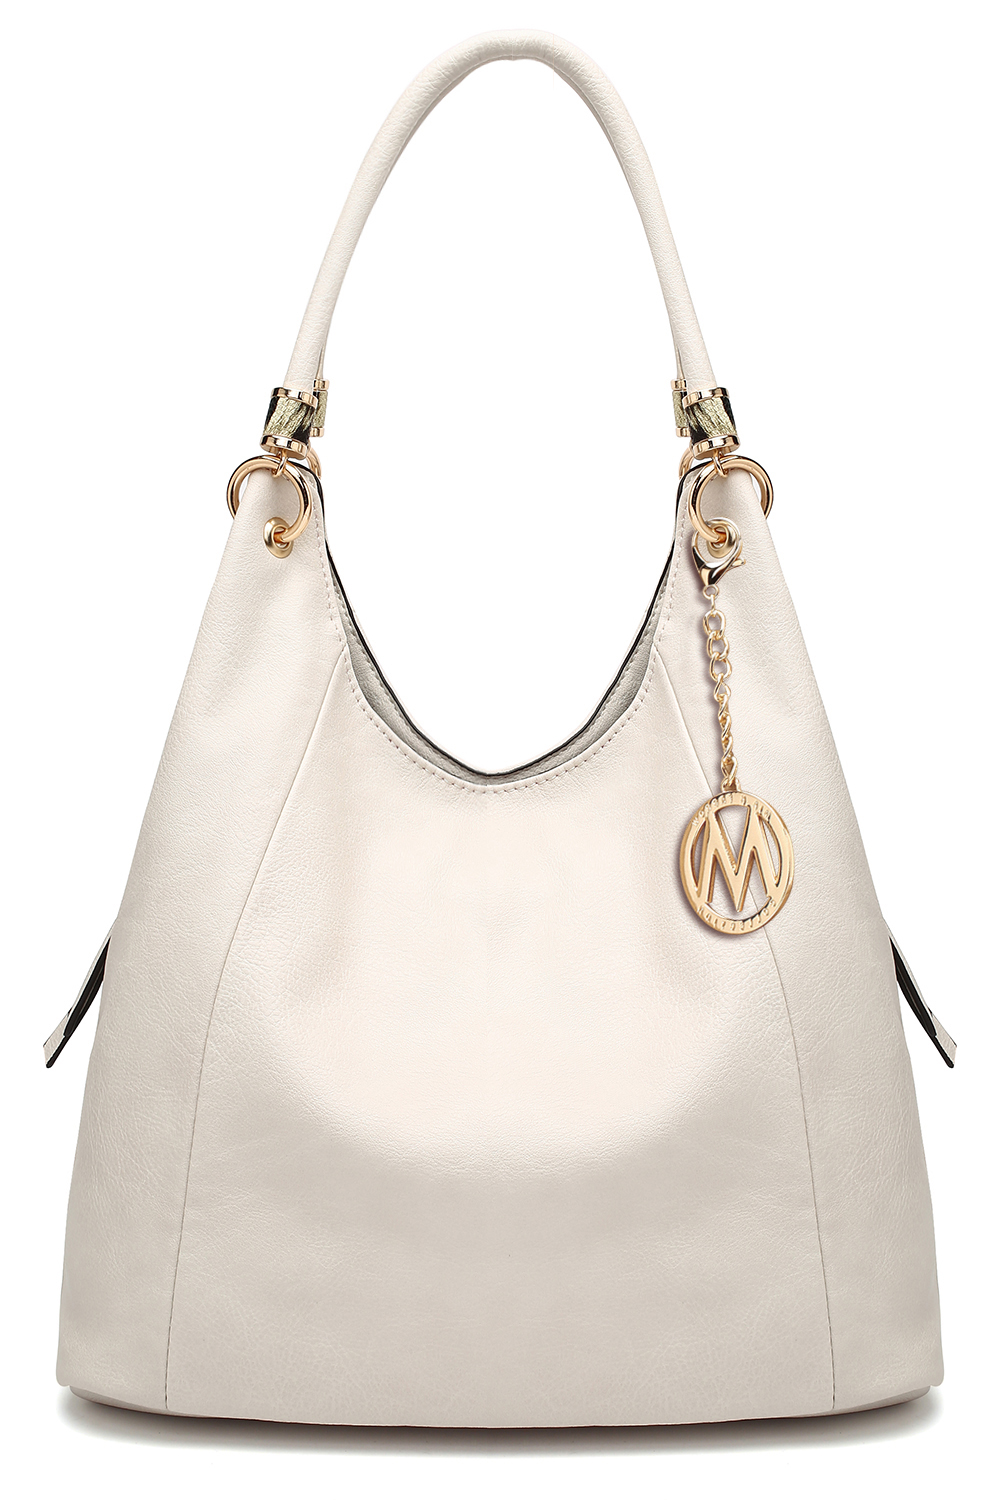 April Designer Hobo Shoulder bag